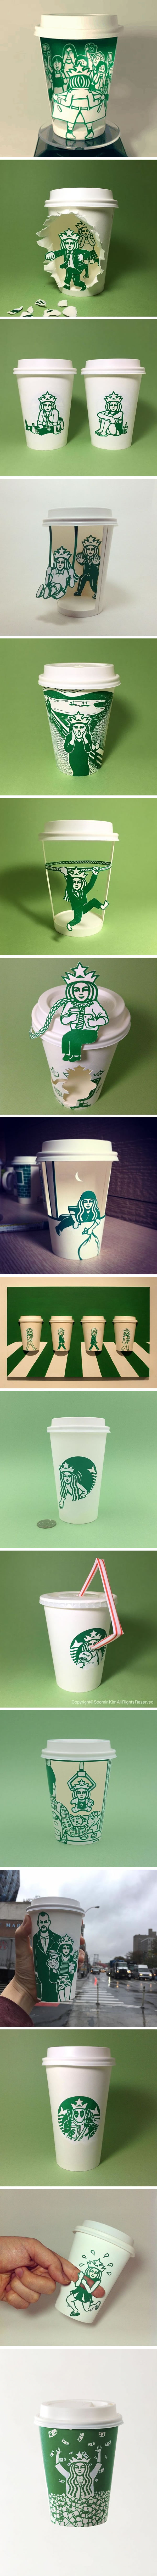 Artist Reveals The Mysterious Hidden Life Of Starbucks' Mermaid